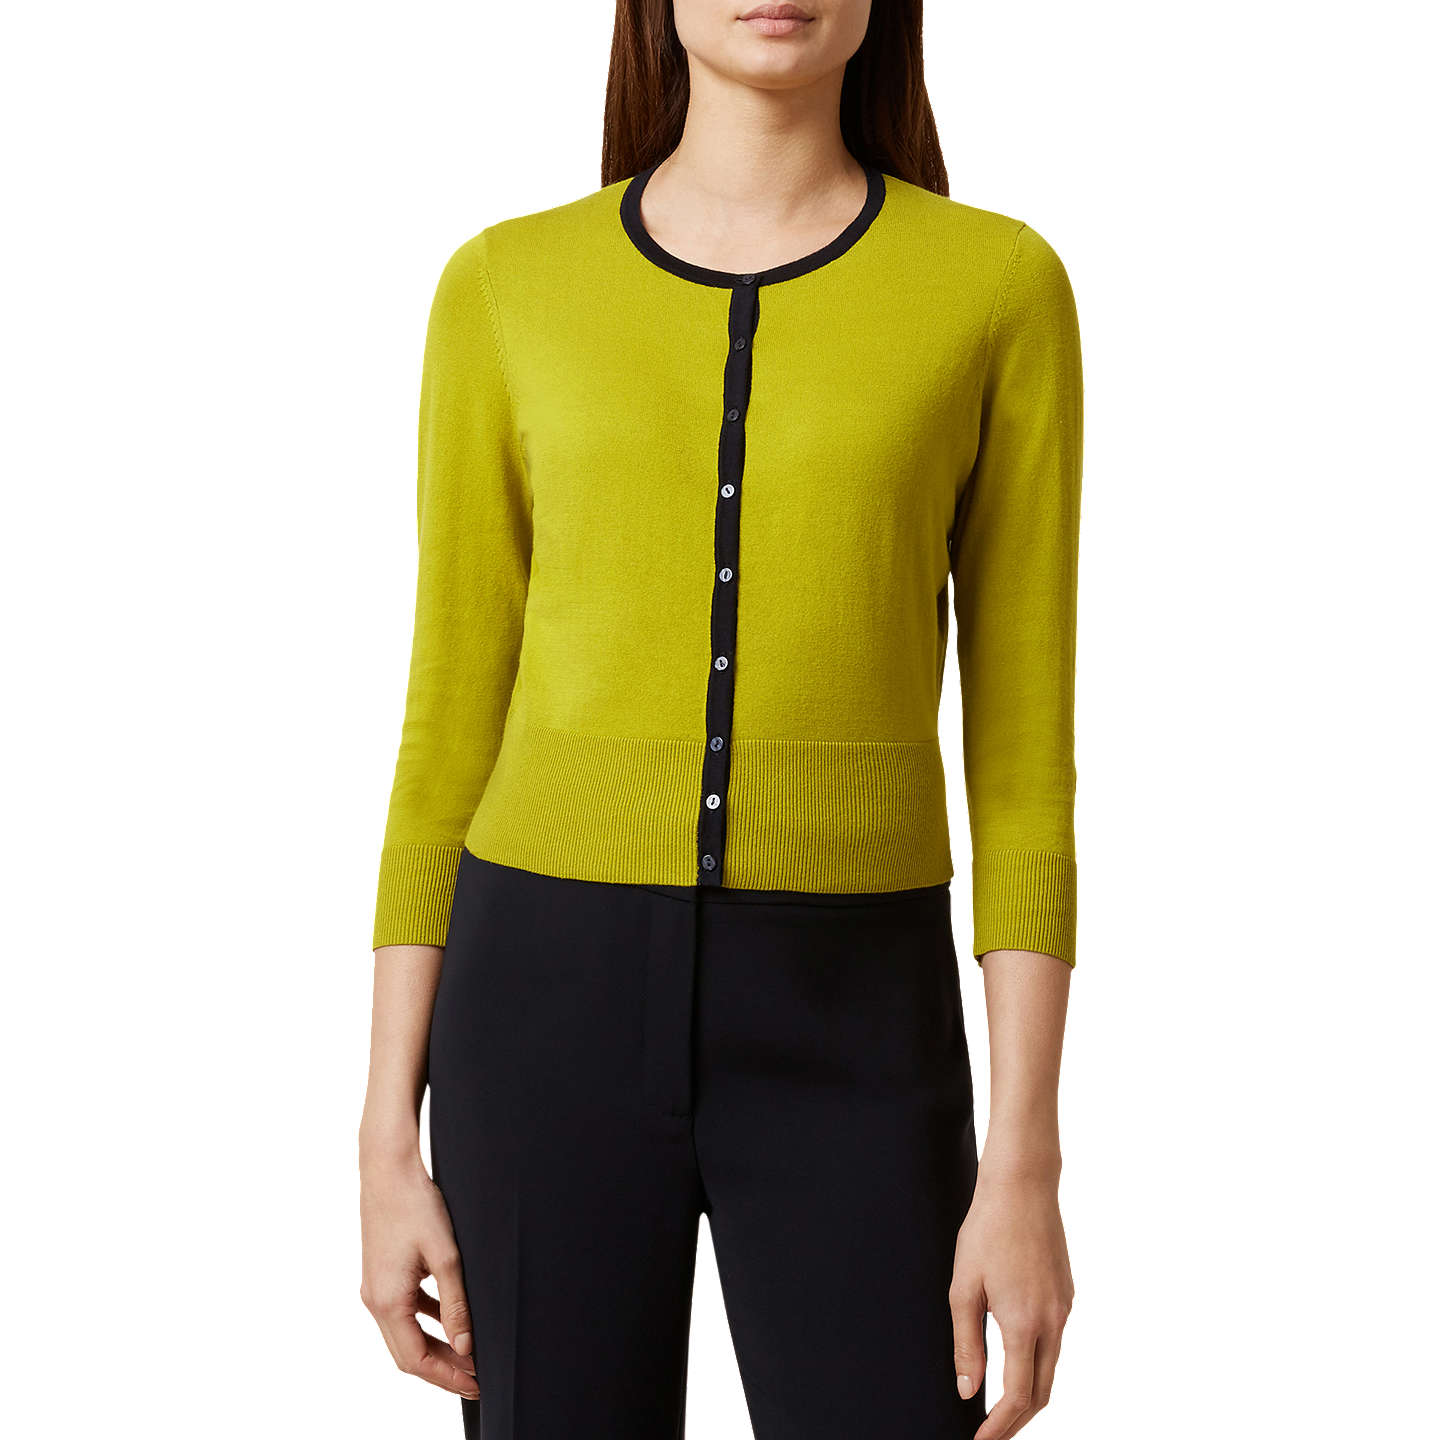 BuyHobbs Evie Cardigan, Chartreuse/Navy, XS Online at johnlewis.com